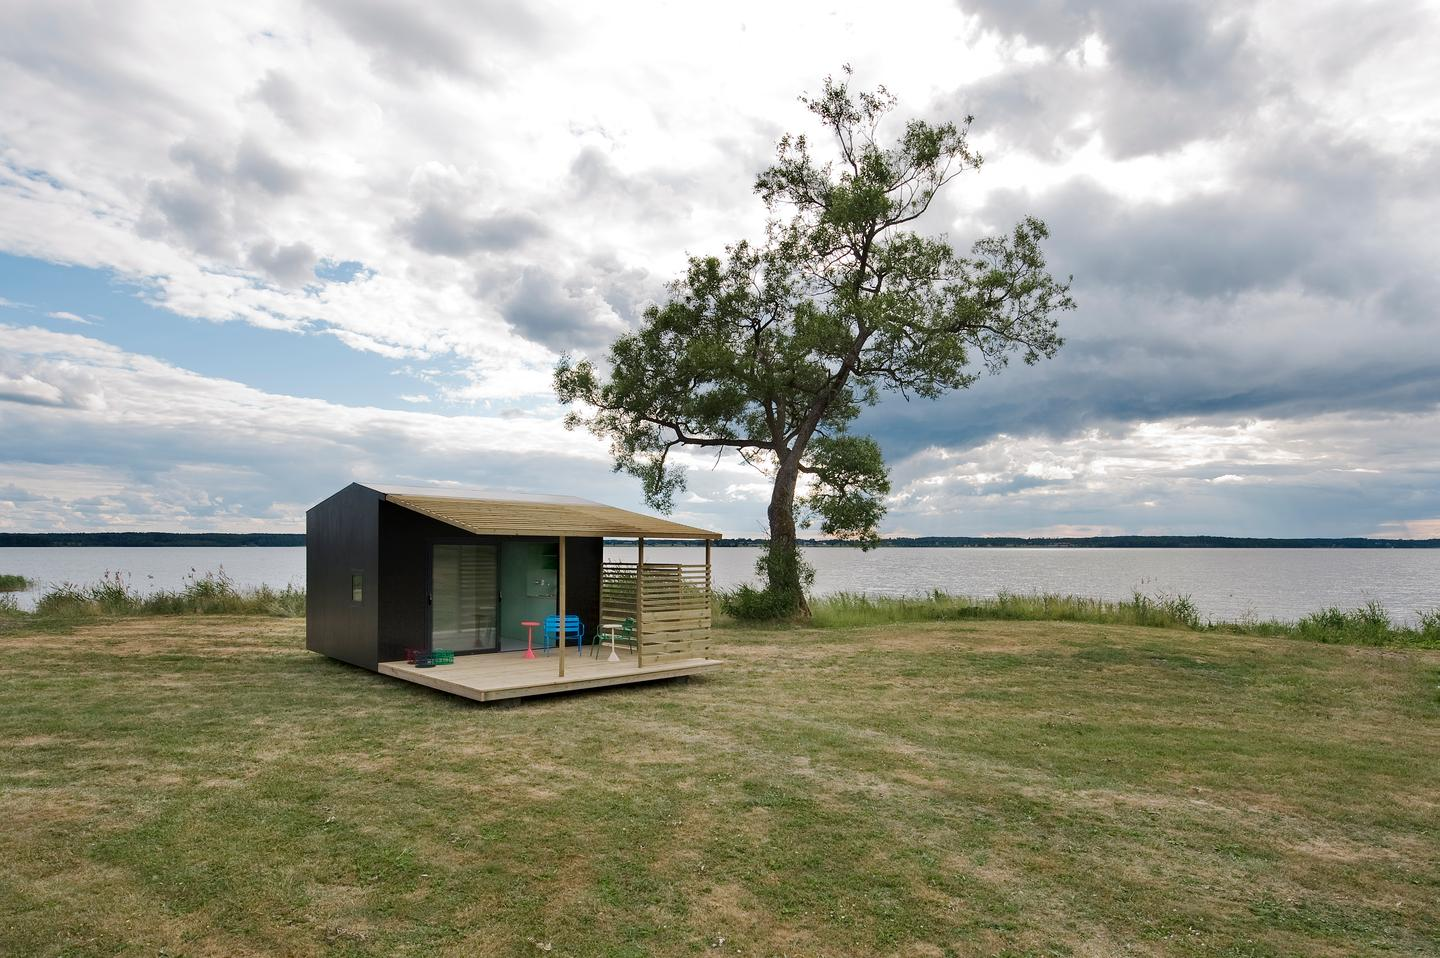 Mini House is designed by Swedish architect Jonas Wagell (image: Andy Liffner)